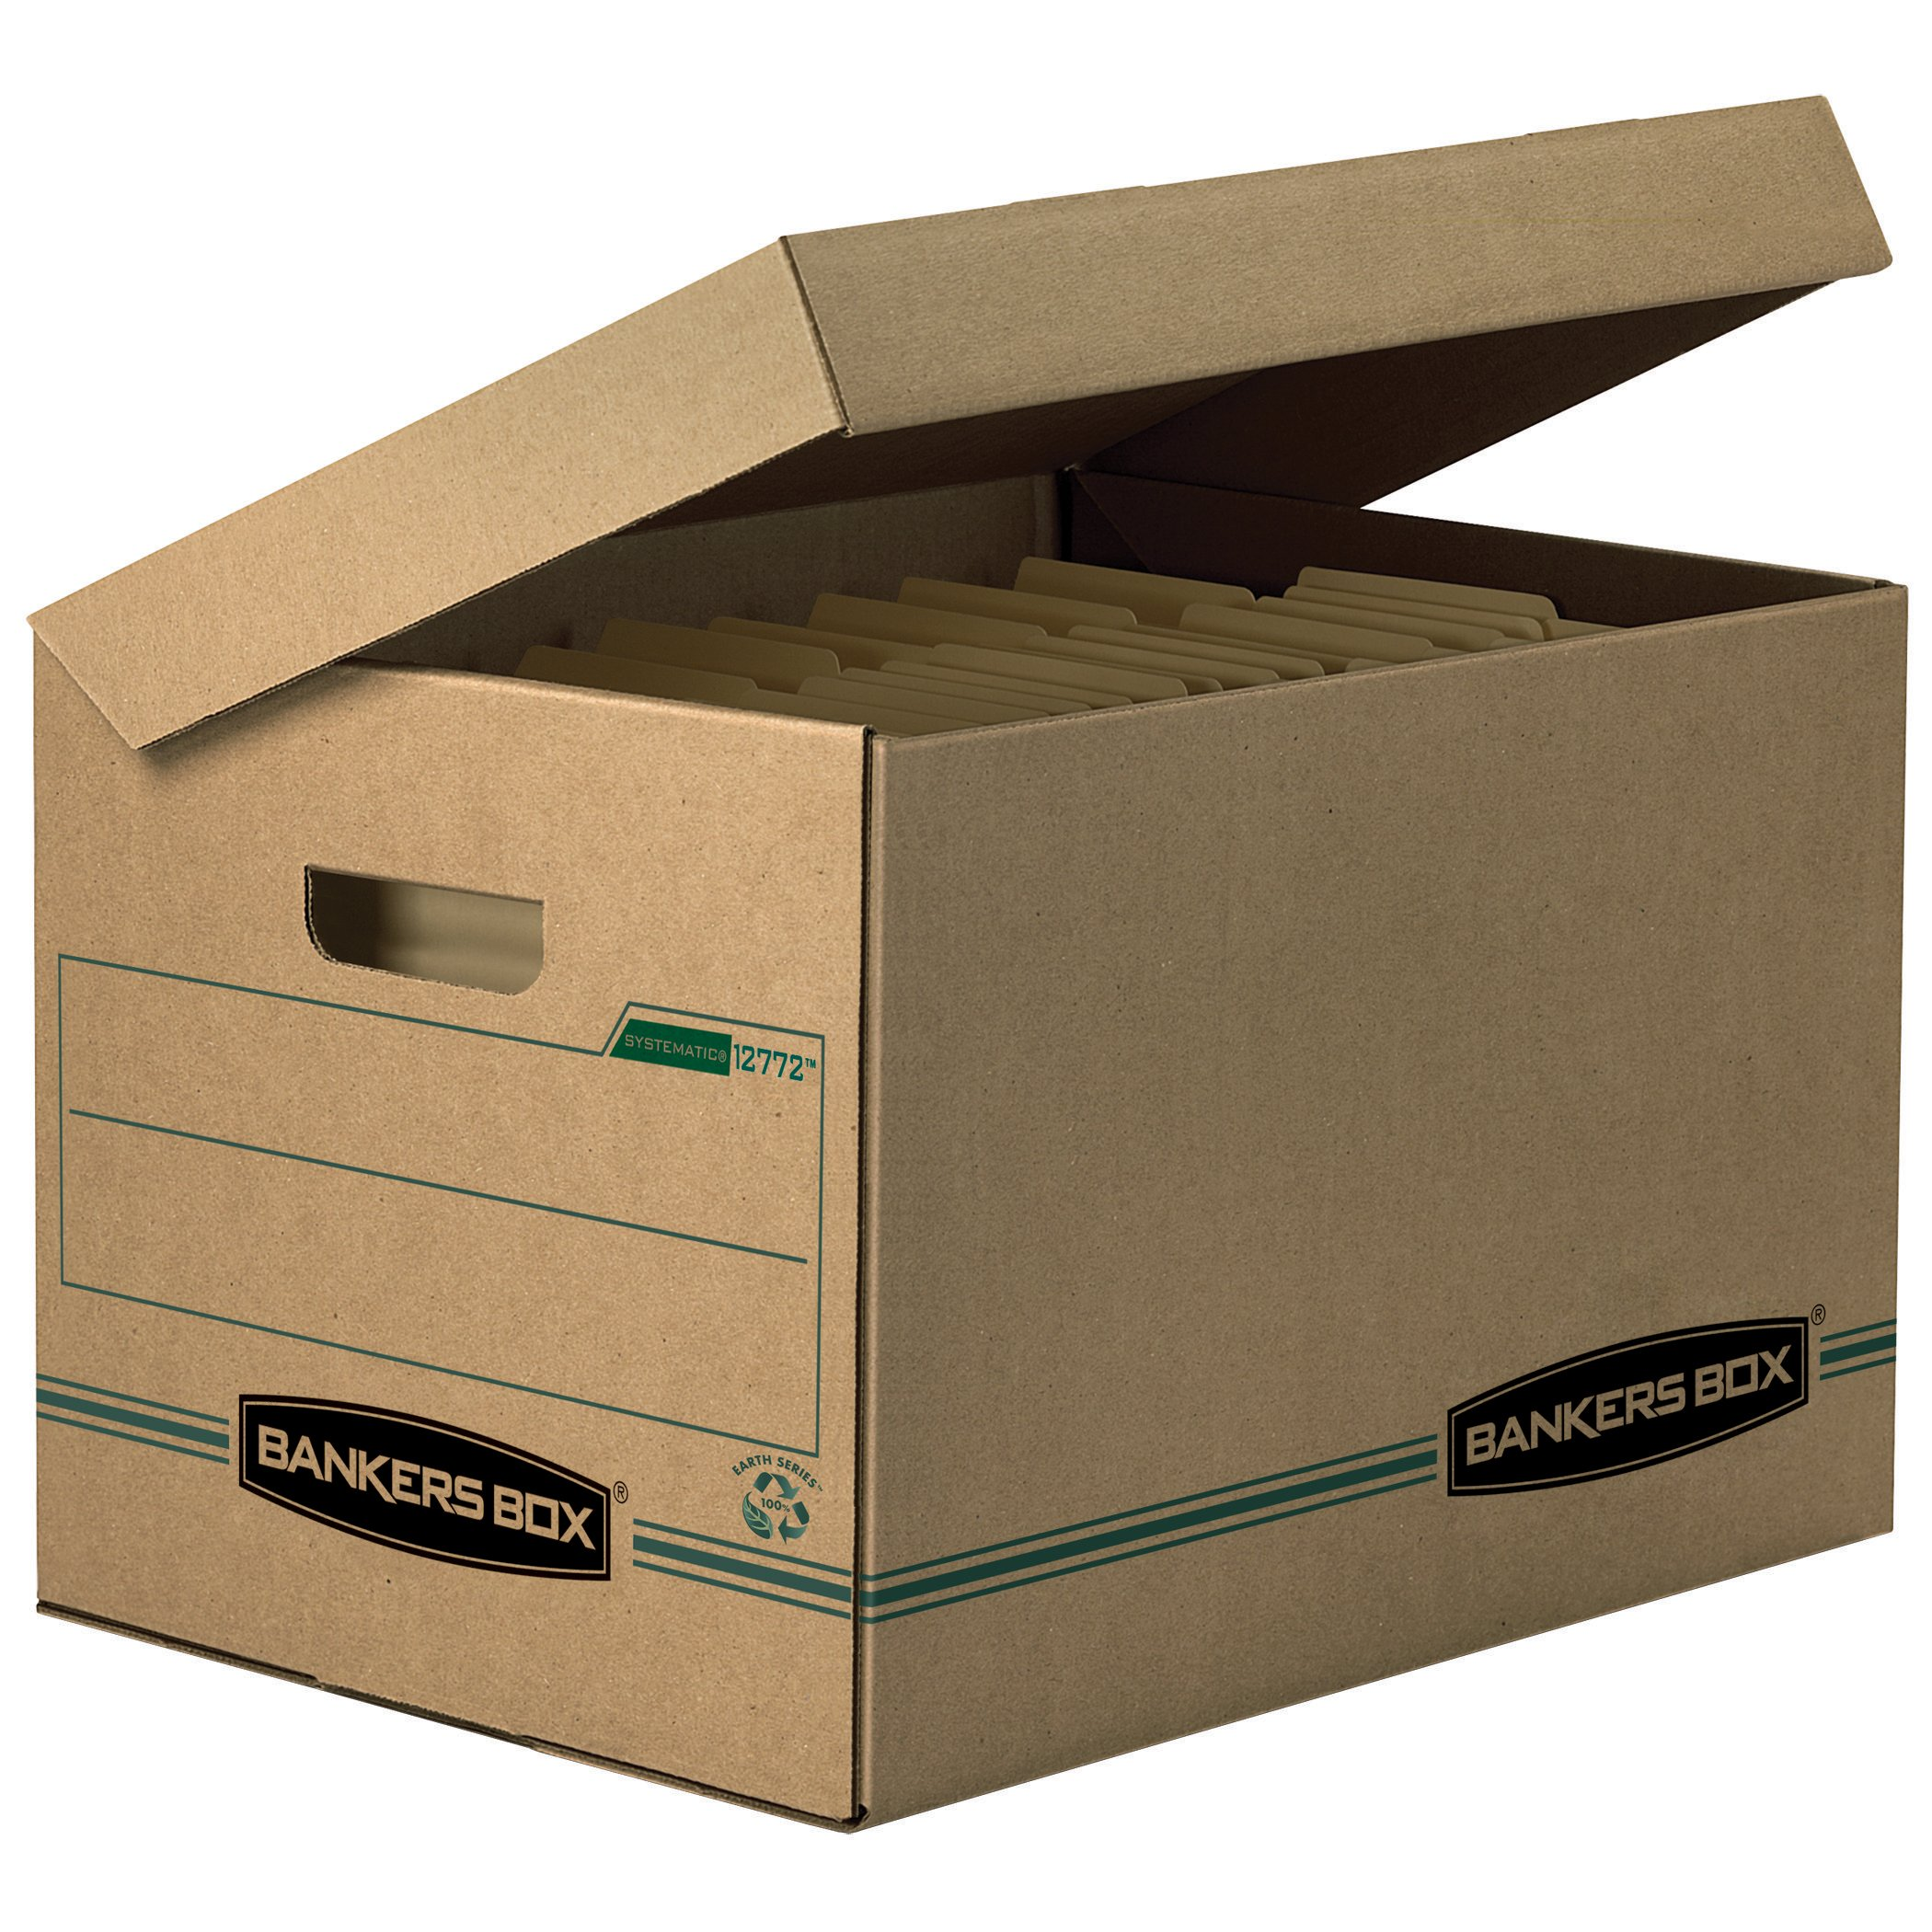 Bankers Box 12772 STOR/FILE Storage Box, Letter/Legal, Attached Lid, Kraft/Green (Case of 12)